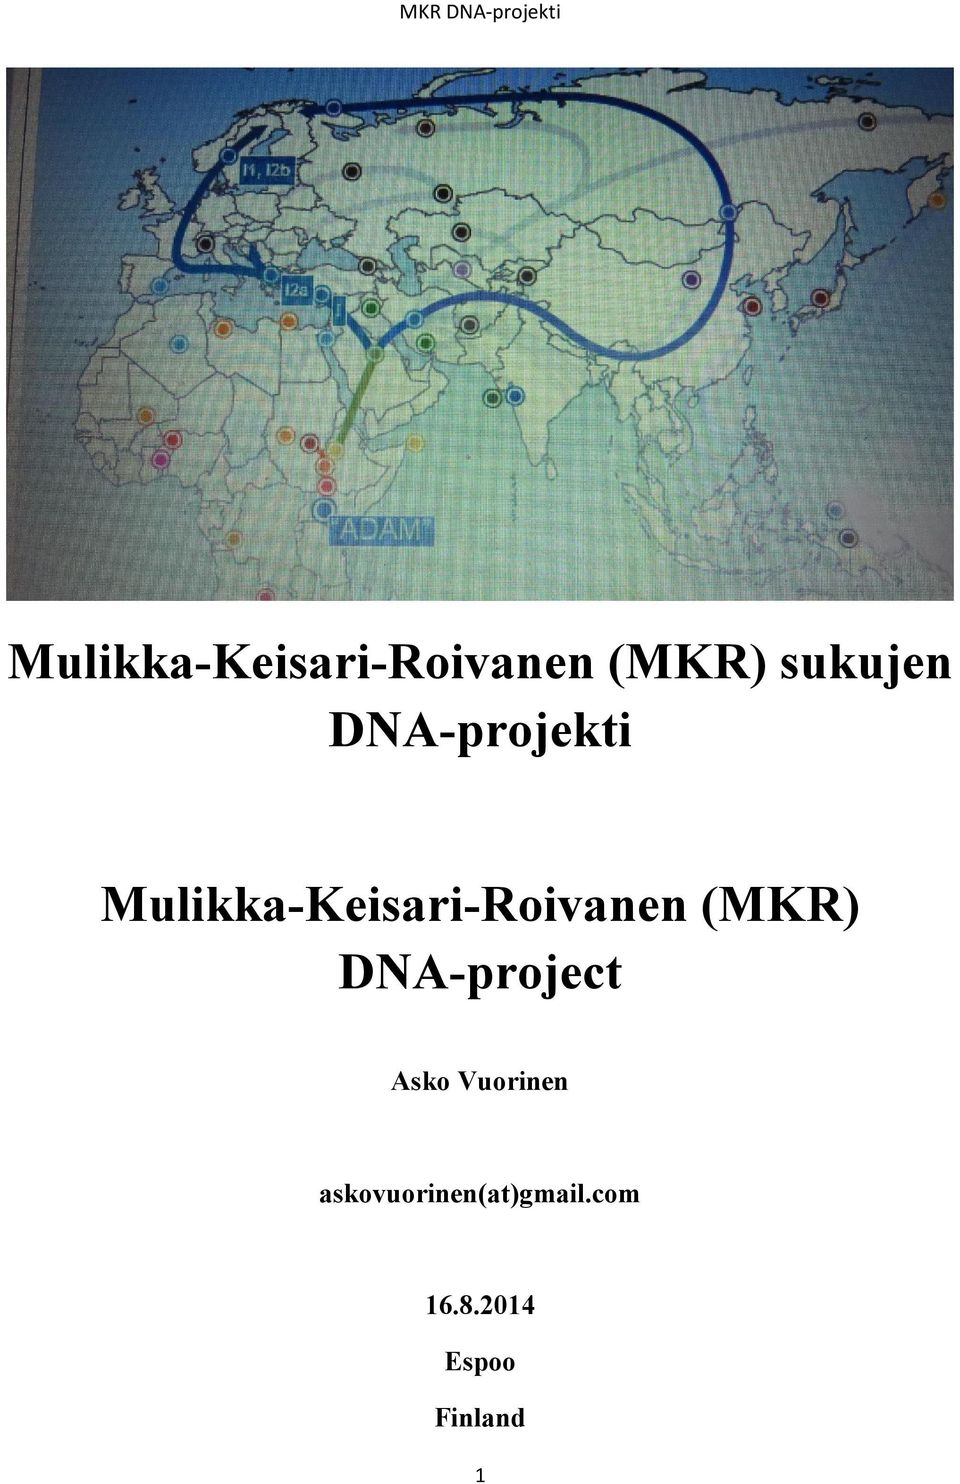 (MKR) DNA-project Asko Vuorinen